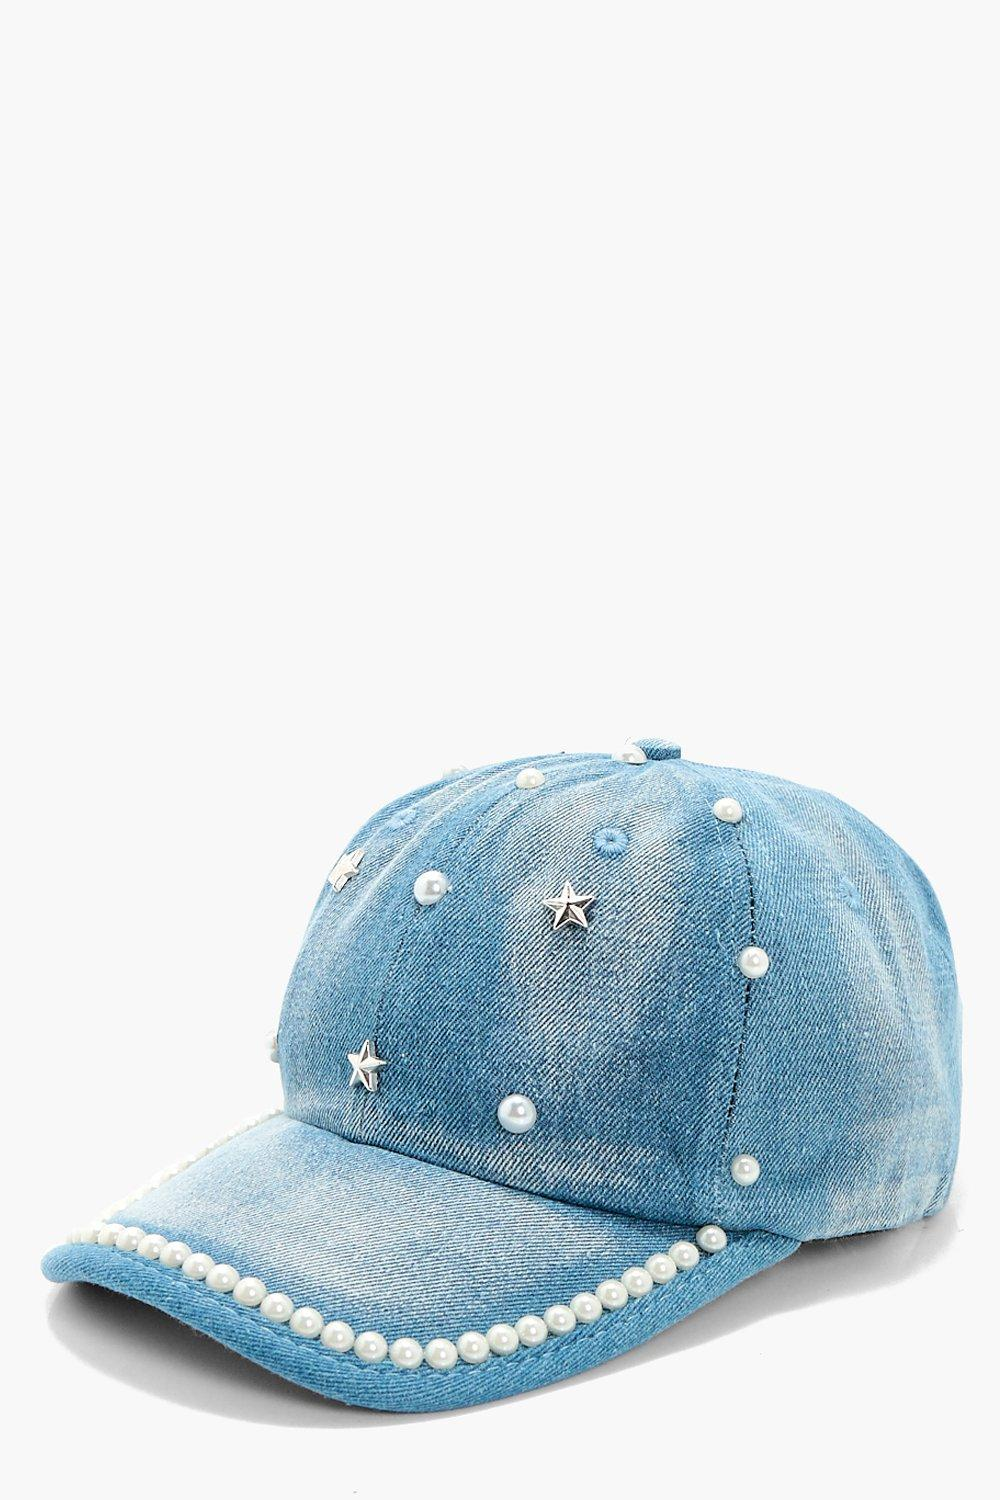 Pearl And Star Baseball Cap - blue - Bethany Pearl